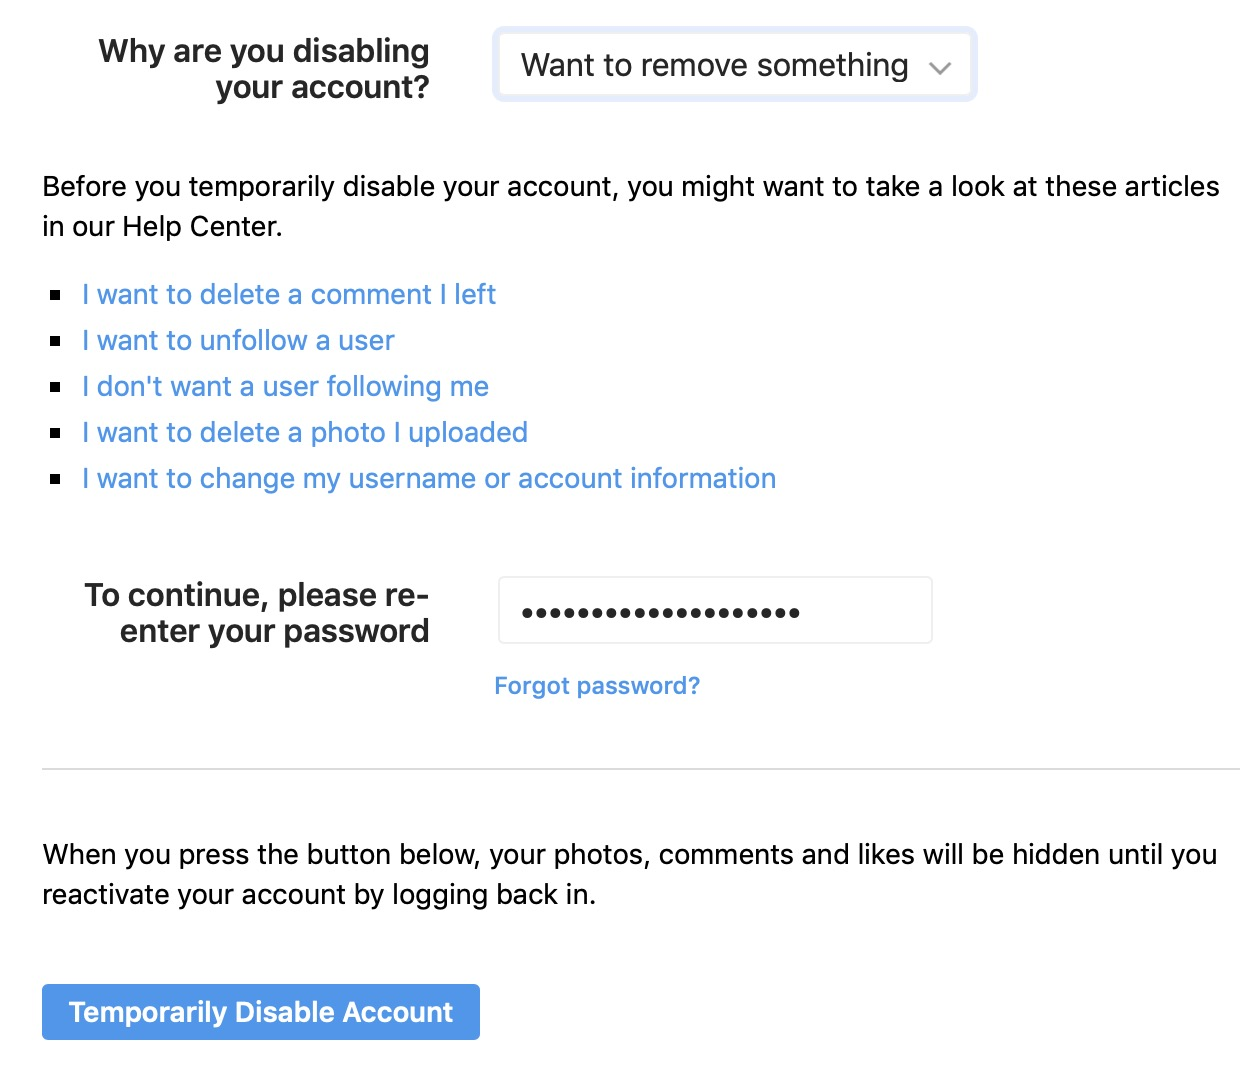 How to delete or temporarily disable your Instagram account - 9to5Mac